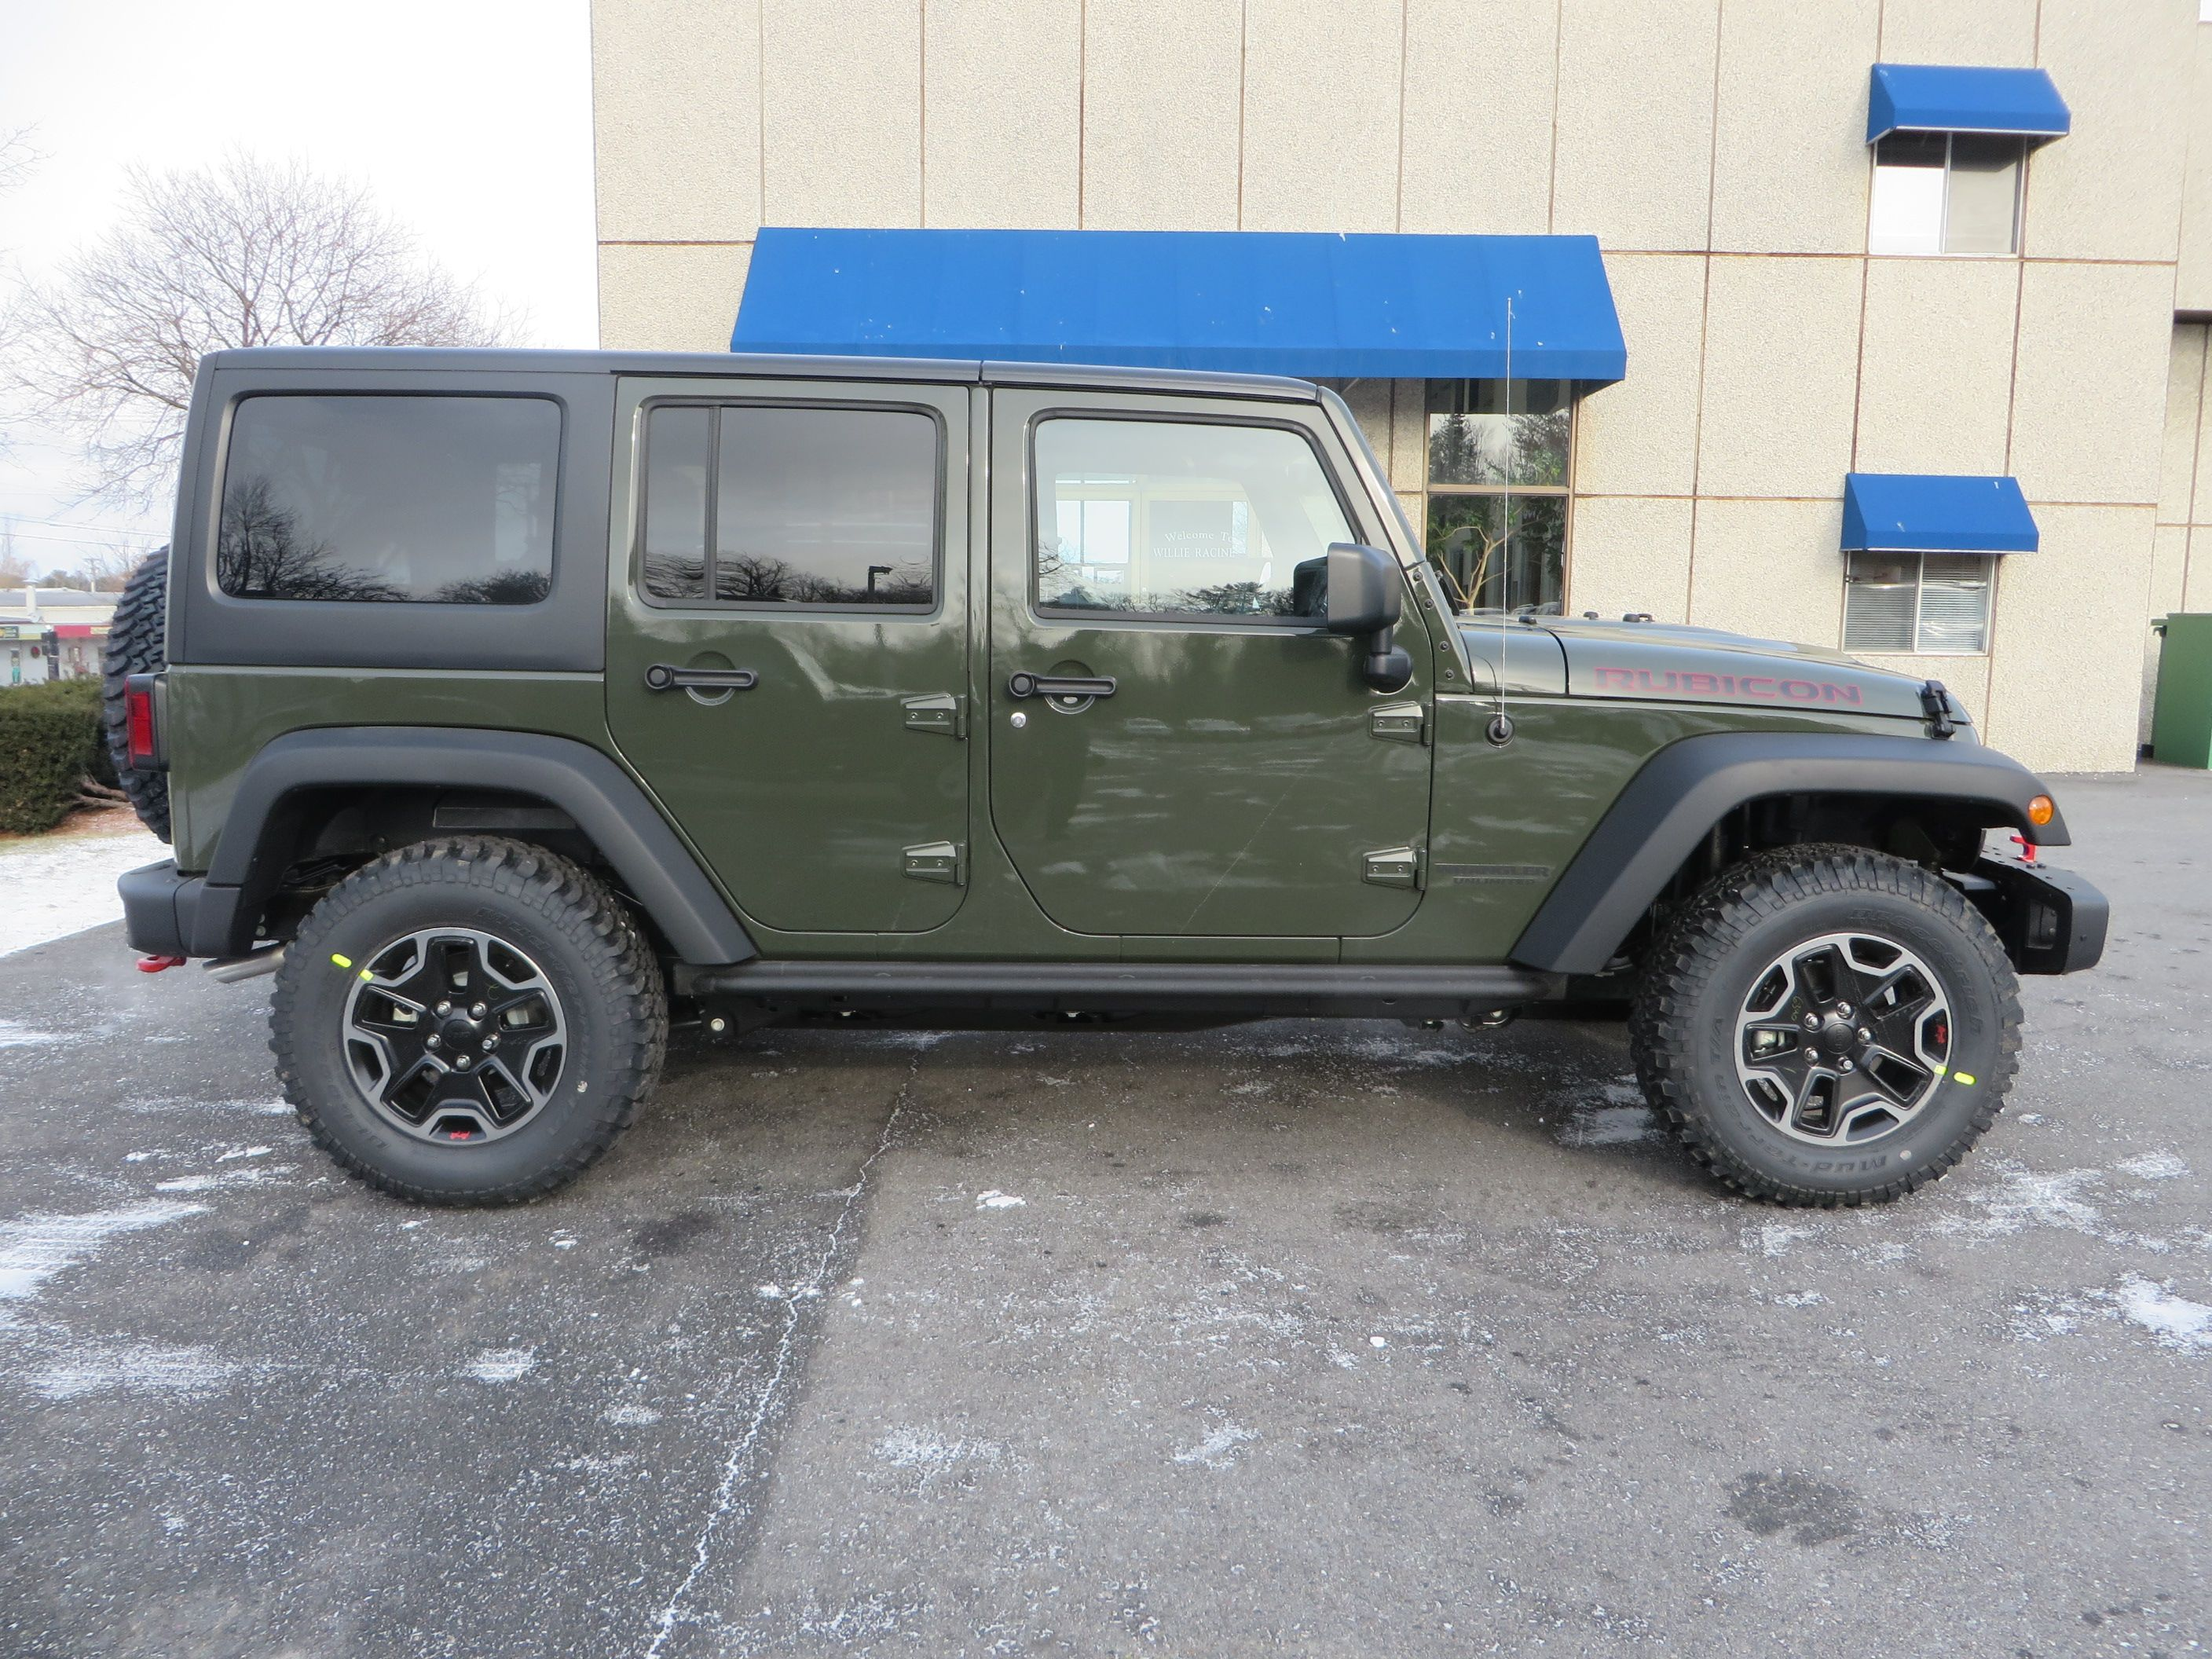 2015 Jeep Wrangler Unlimited Rubicon in Tank Green Just like the